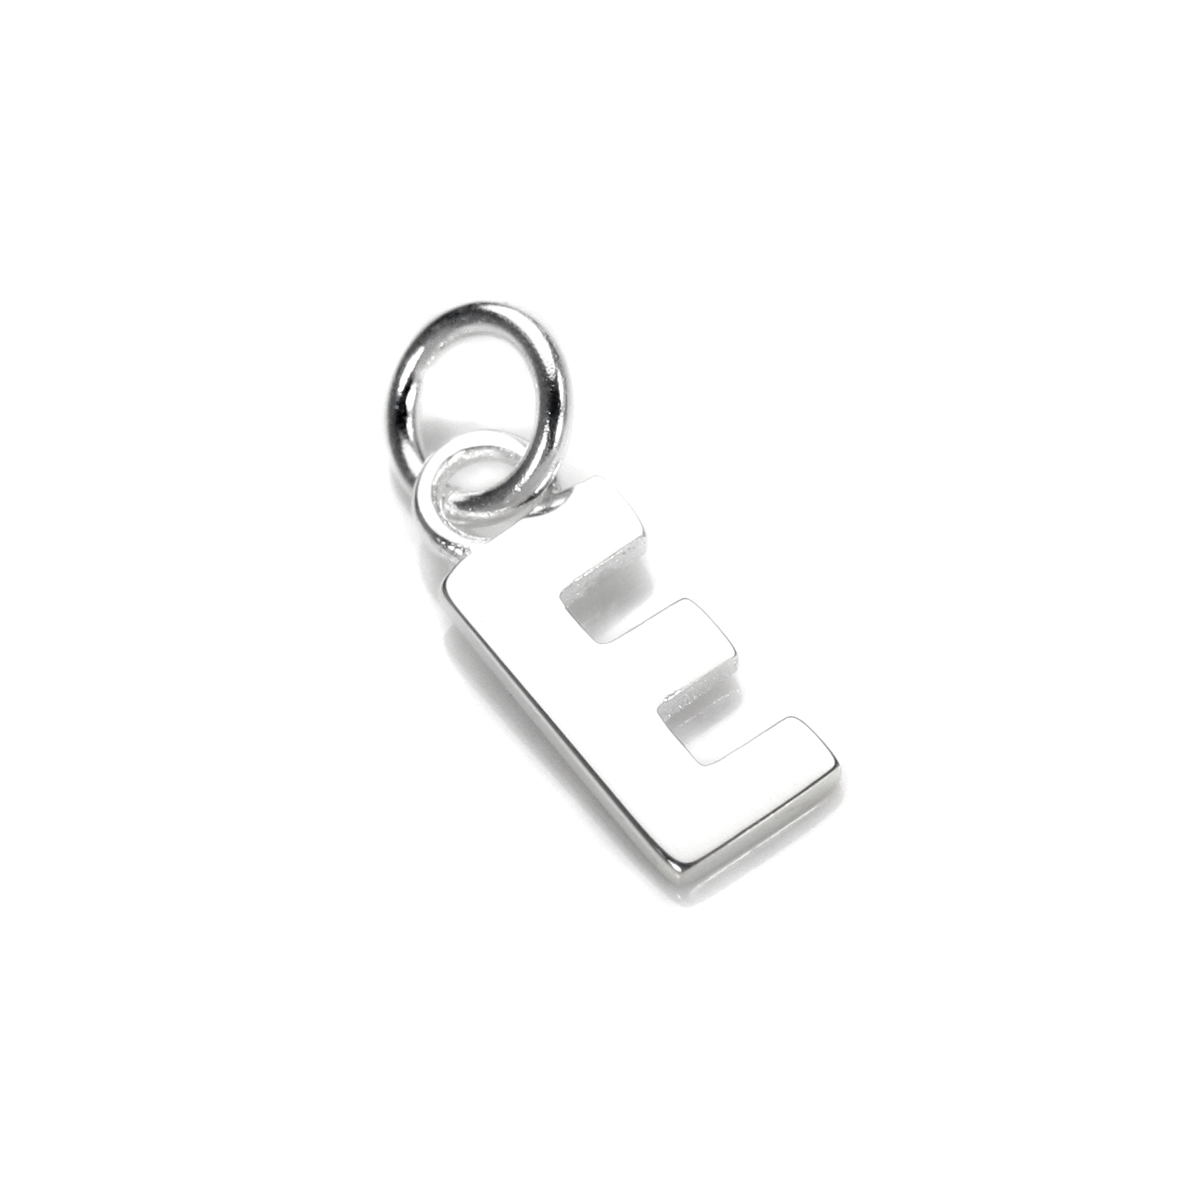 An image of Sterling Silver Letter E Charm